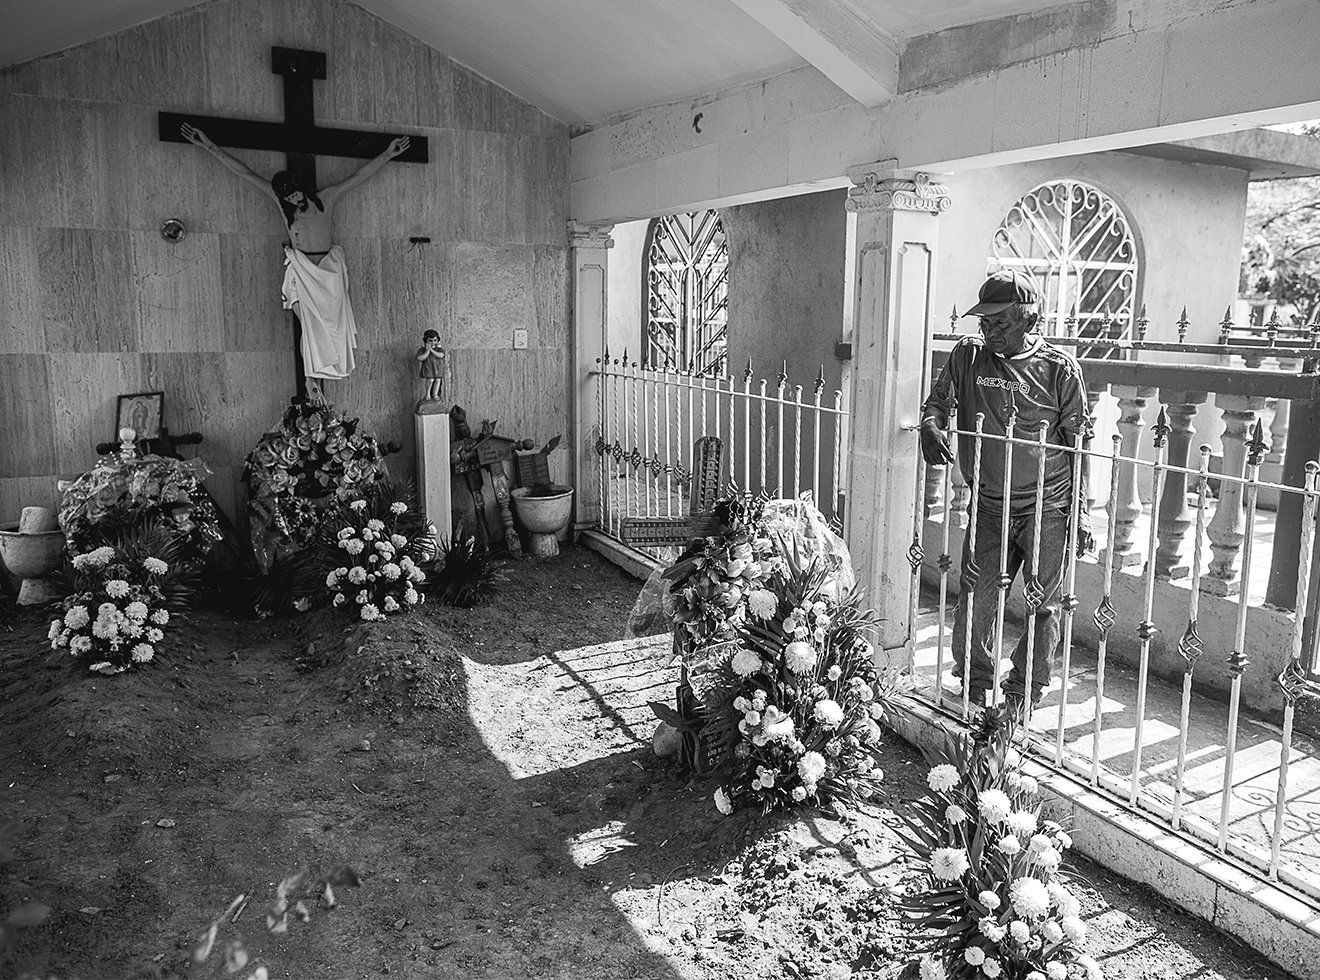 Contreras stops by the tomb of Octavio Colorado Mora, a mechanic whose body he found at a mass-burial site.